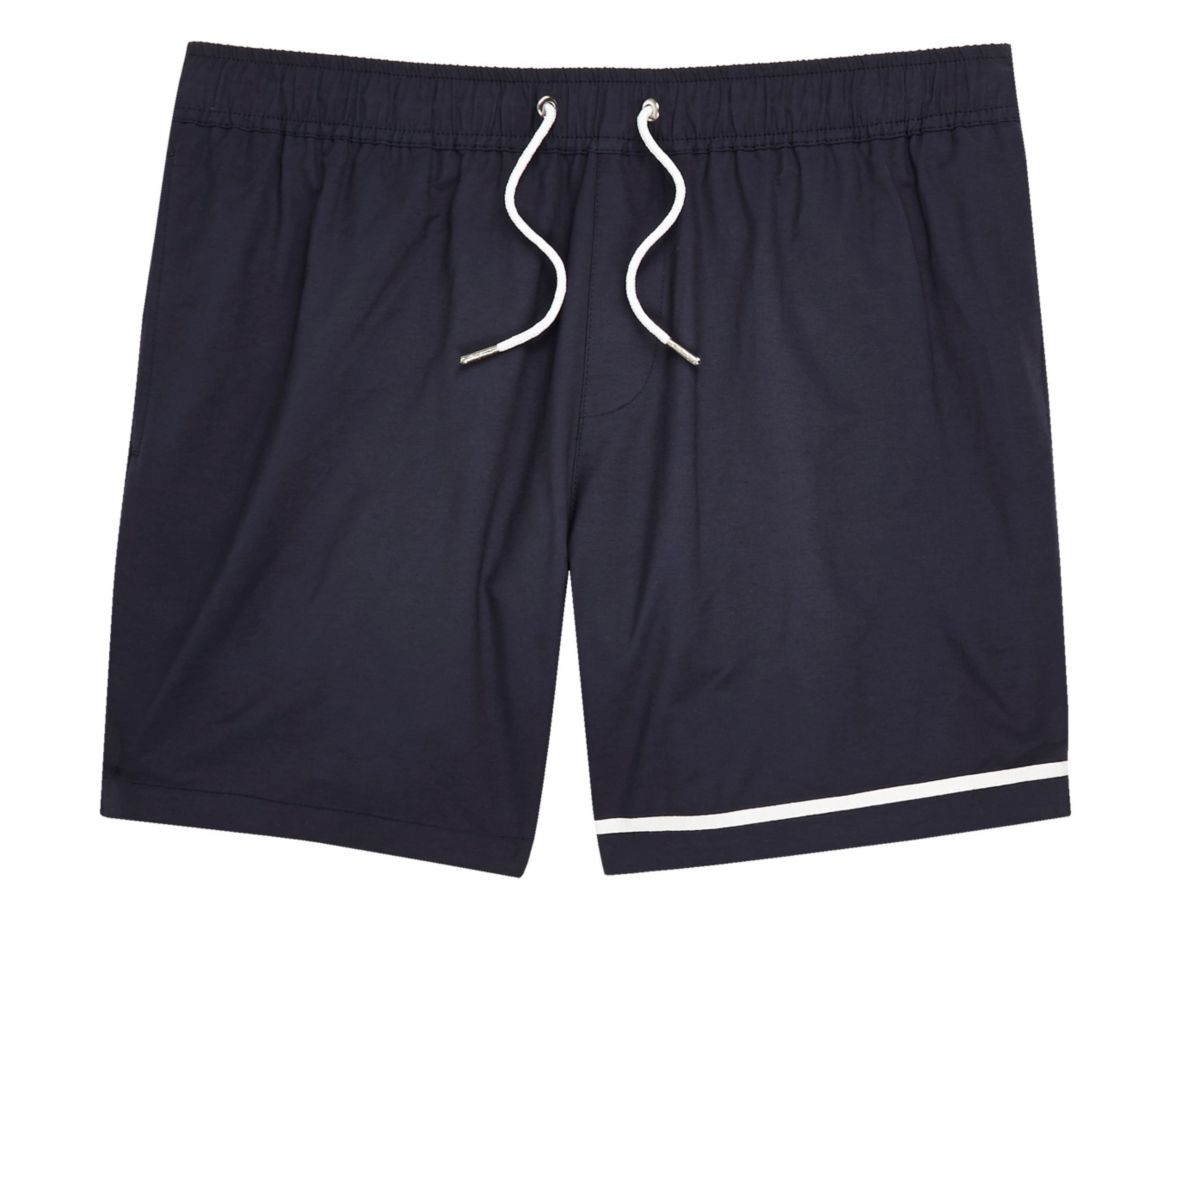 Big and Tall navy swim shorts